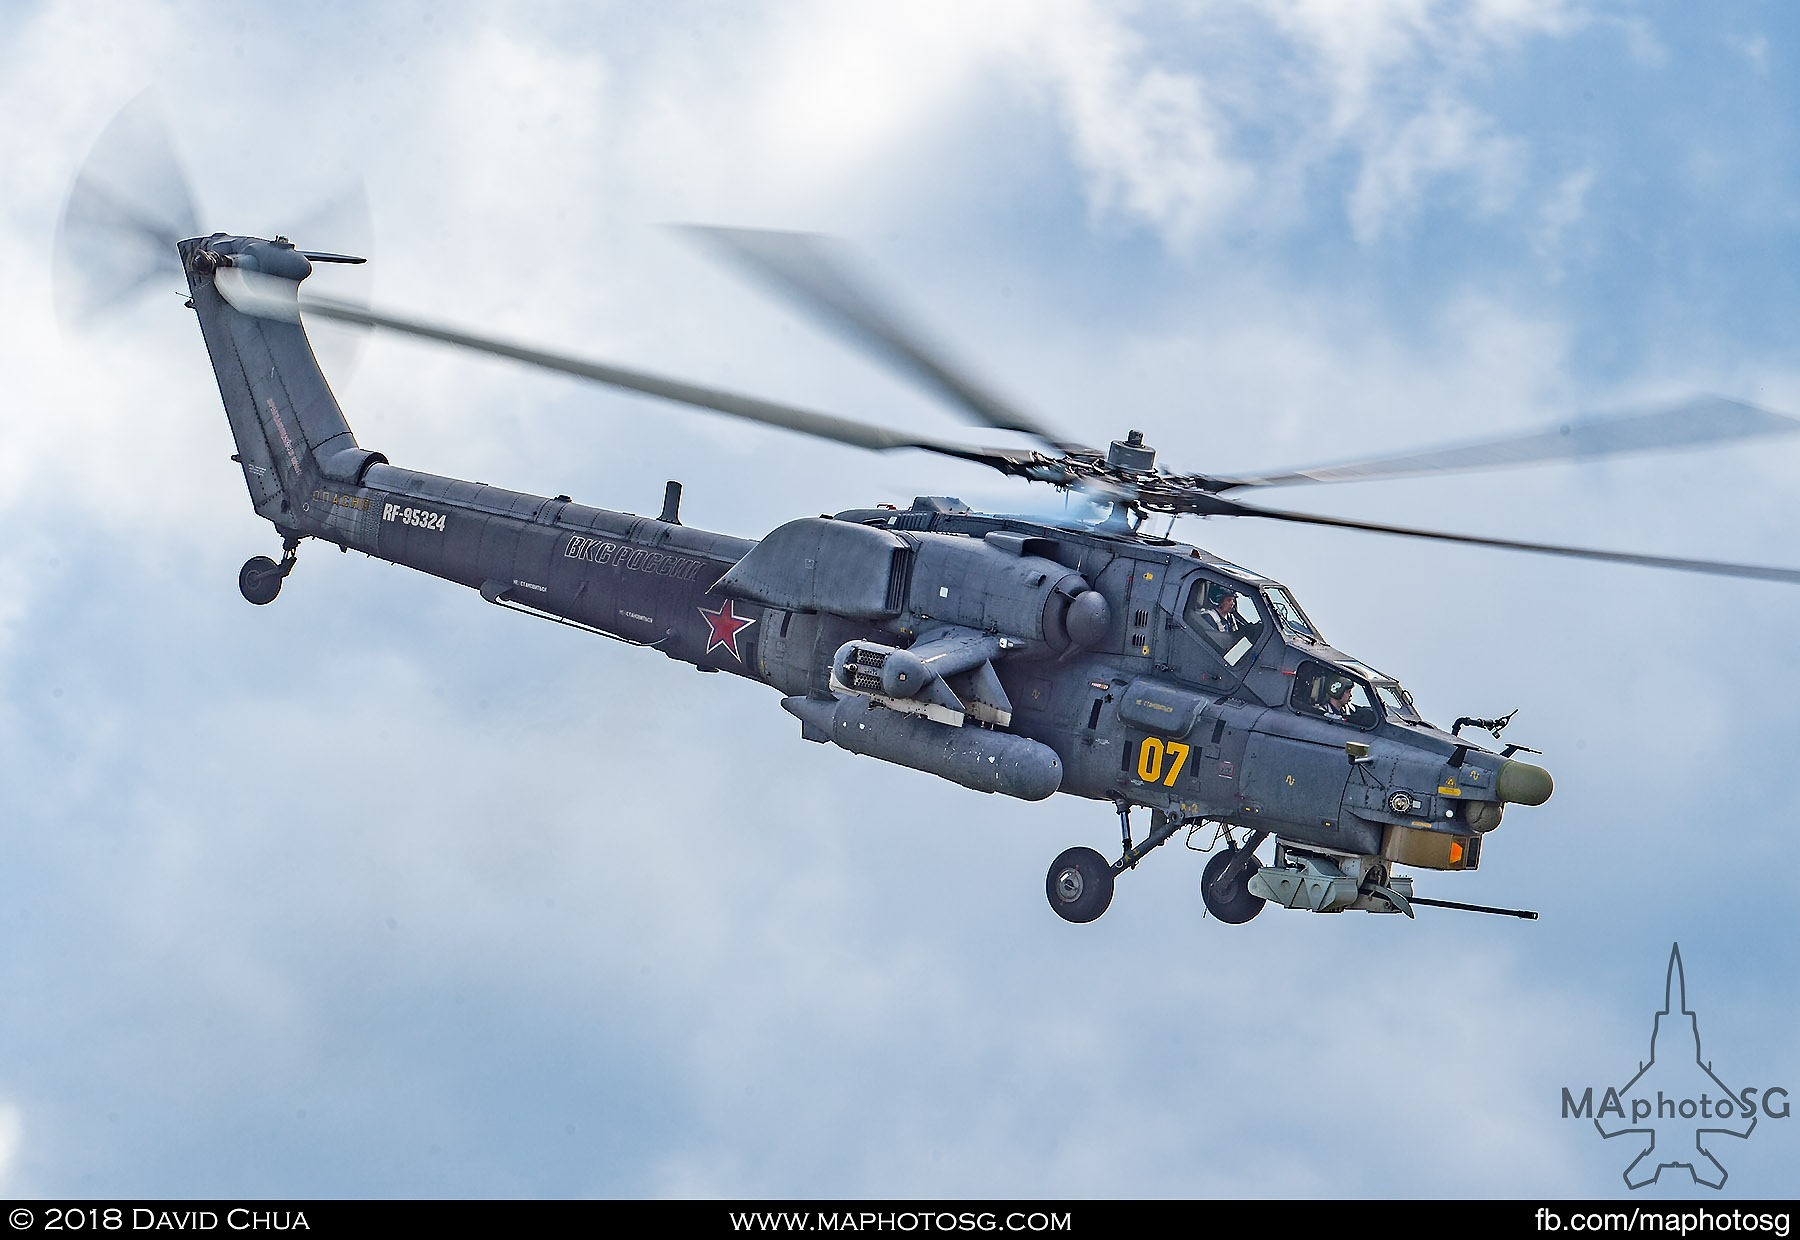 "46. Side view of the Mi-28n ""Night Stalker"" attack helicopter"